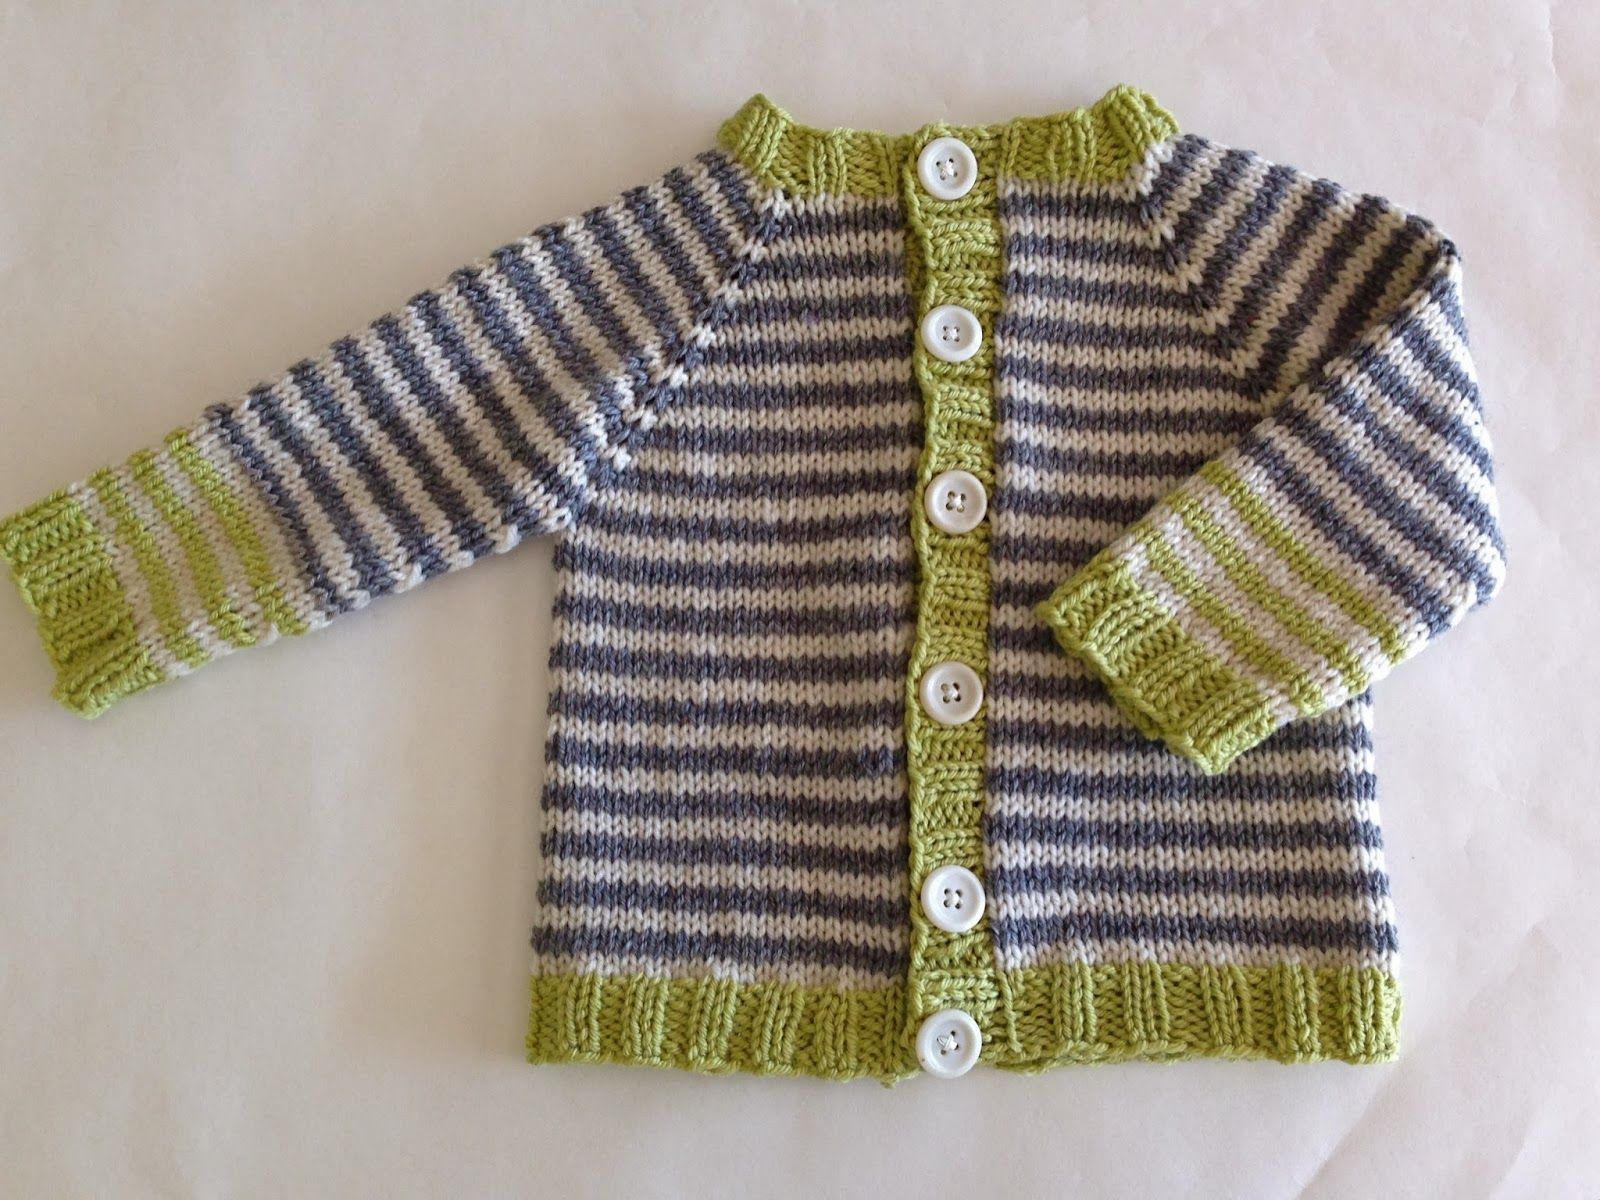 One Piece Sweater Knitting Pattern : Knitionary: totally free/totally adorable baby cardigan KNIT BABY LittleCoffe...